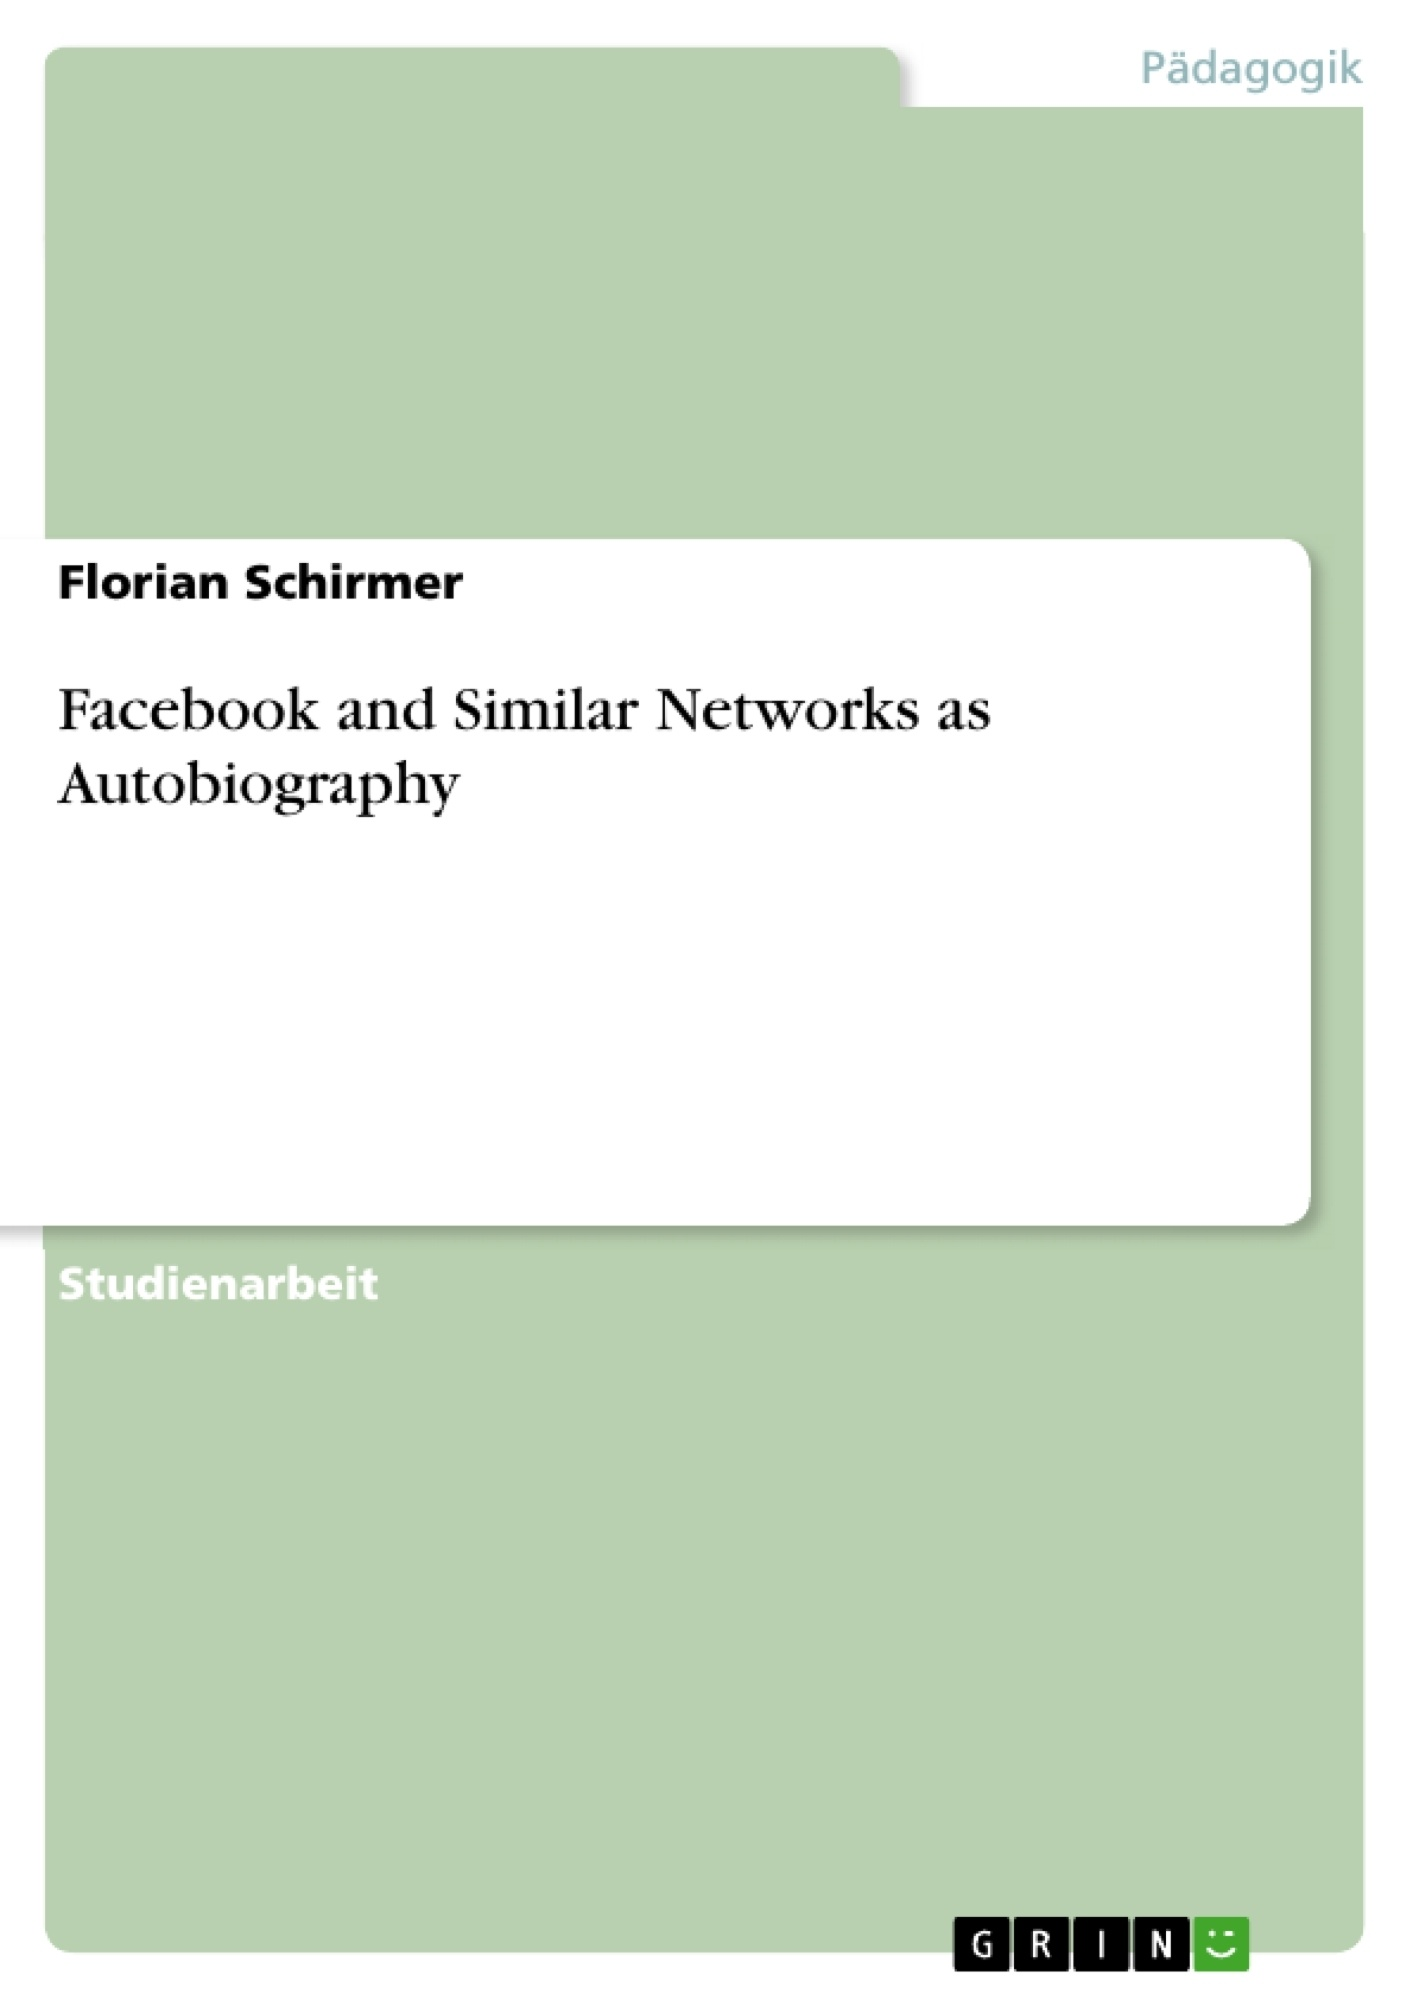 Titel: Facebook and Similar Networks as Autobiography